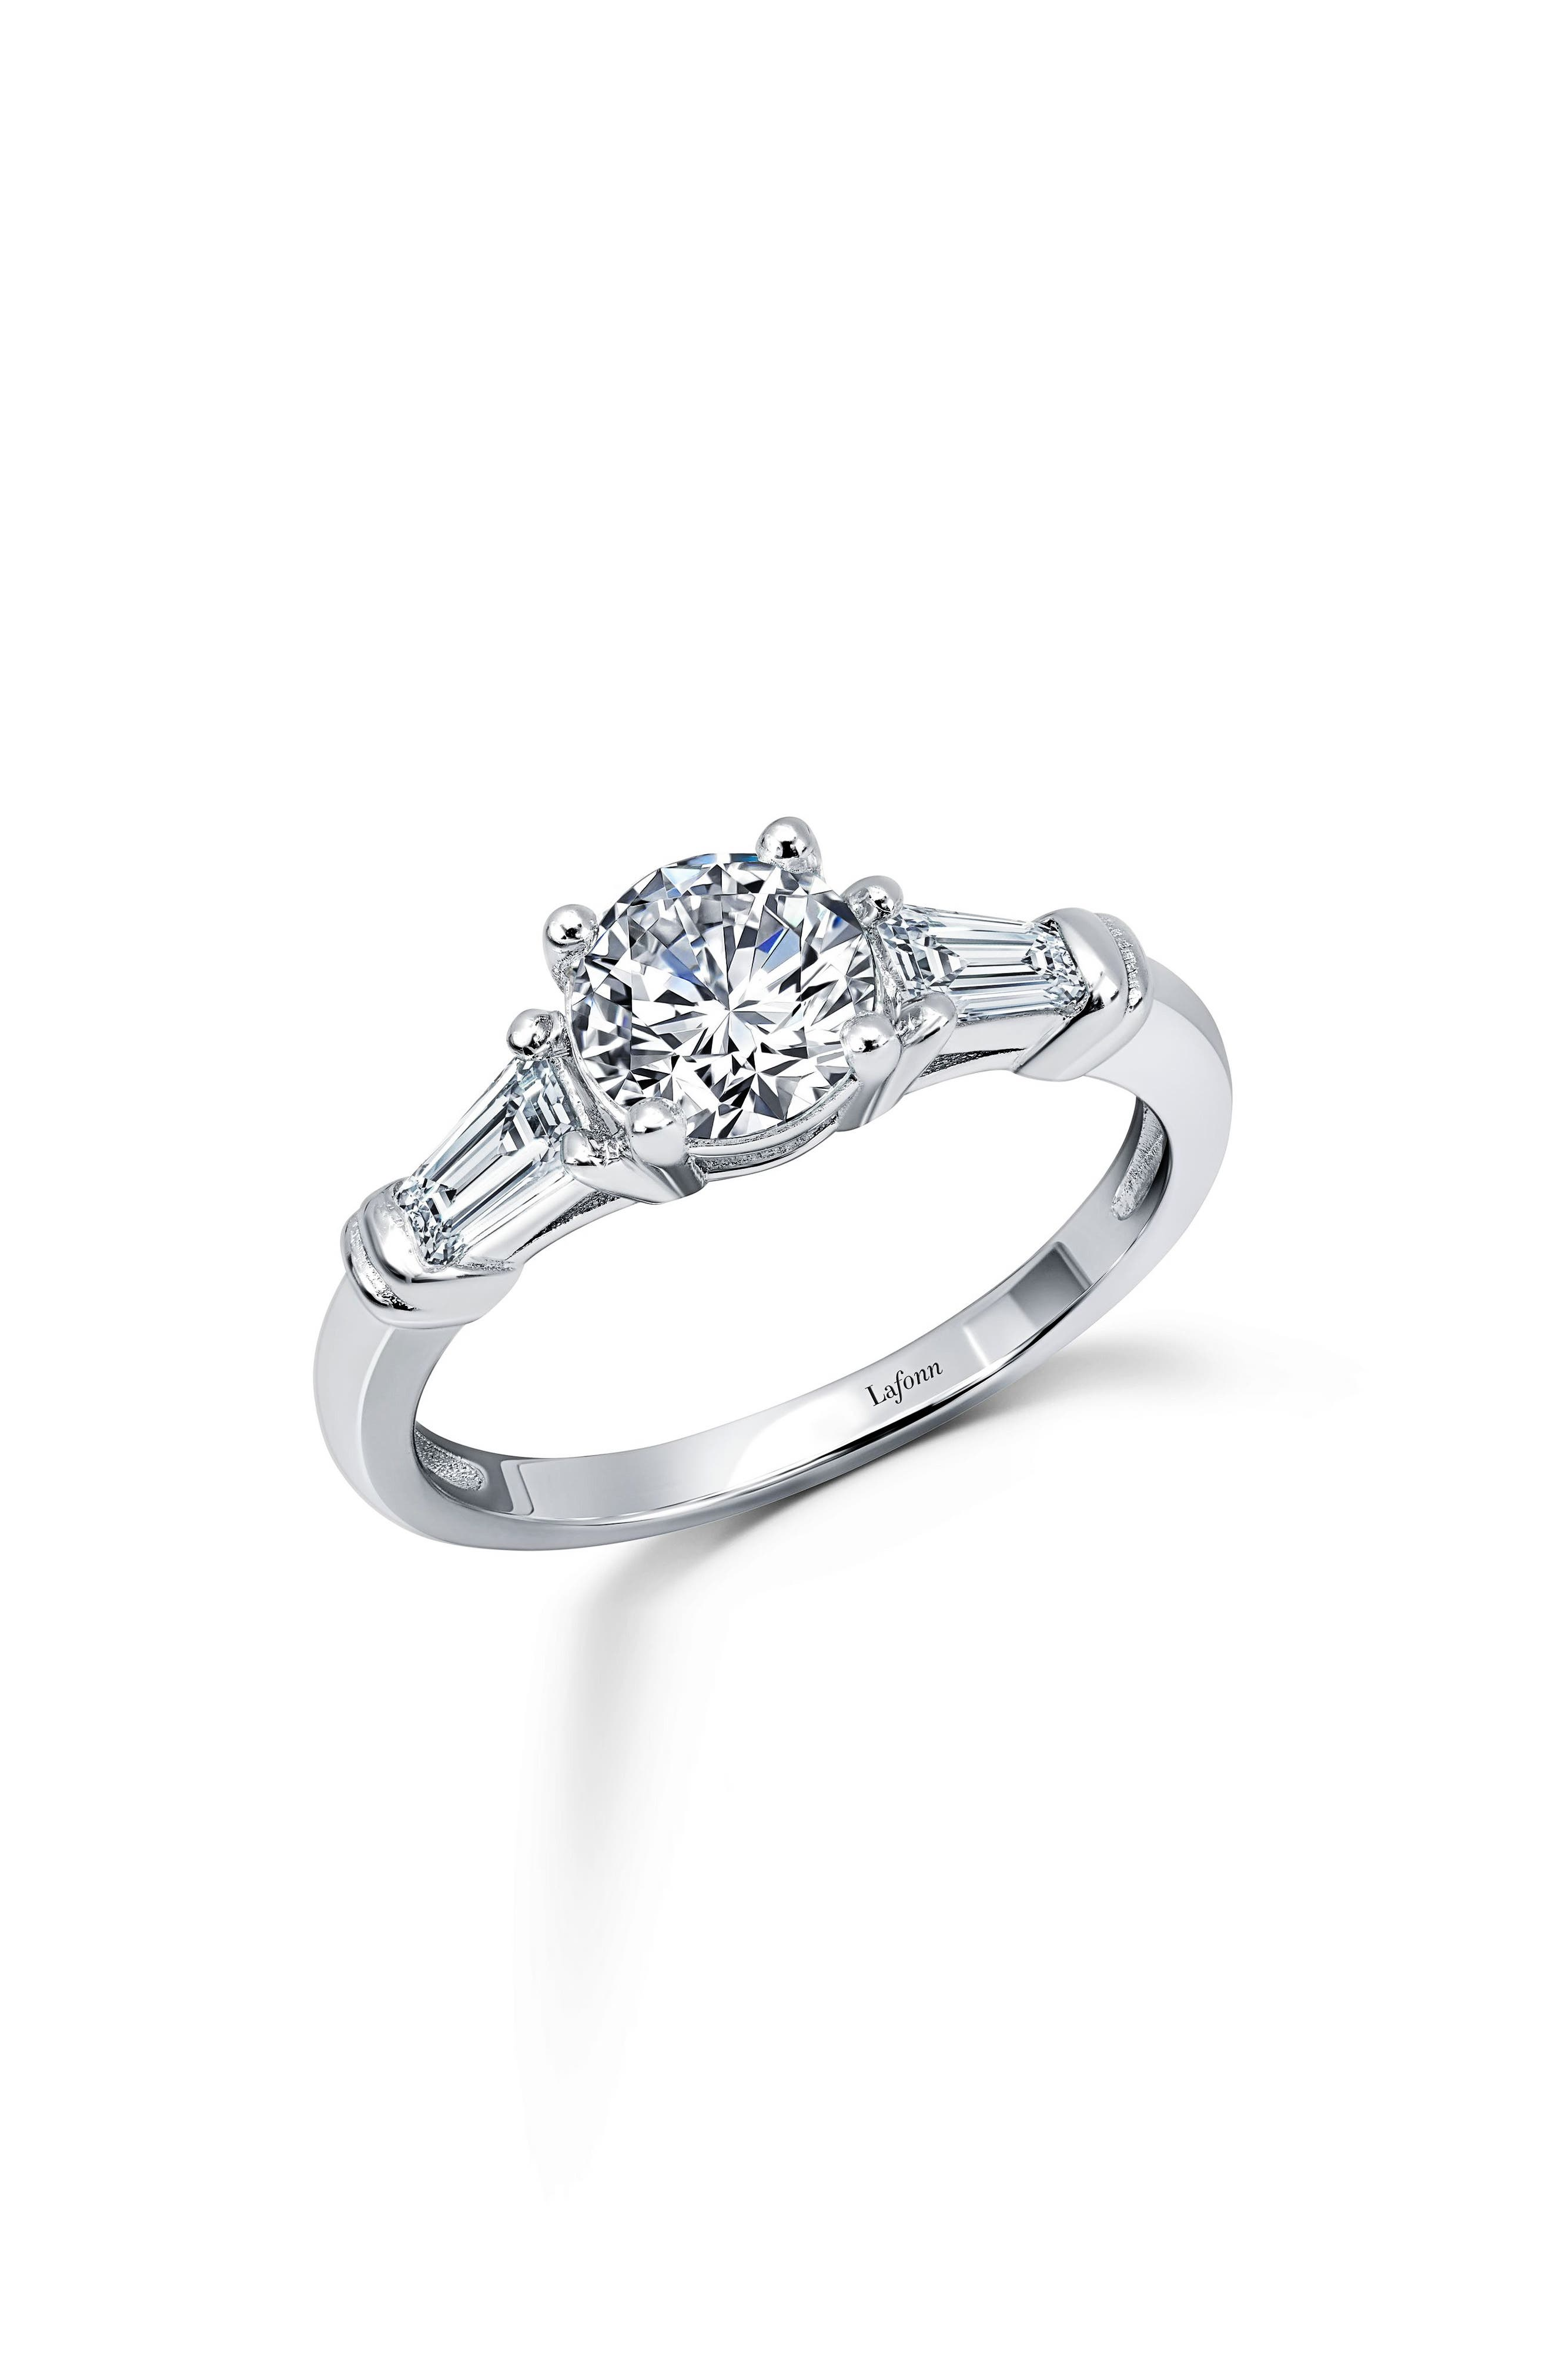 This sparkling three-stone ring features a brilliant round center stone and two faceted baguettes in a timelessly elegant polished setting. Style Name: Lafonn Three Stone Ring. Style Number: 6183378. Available in stores.